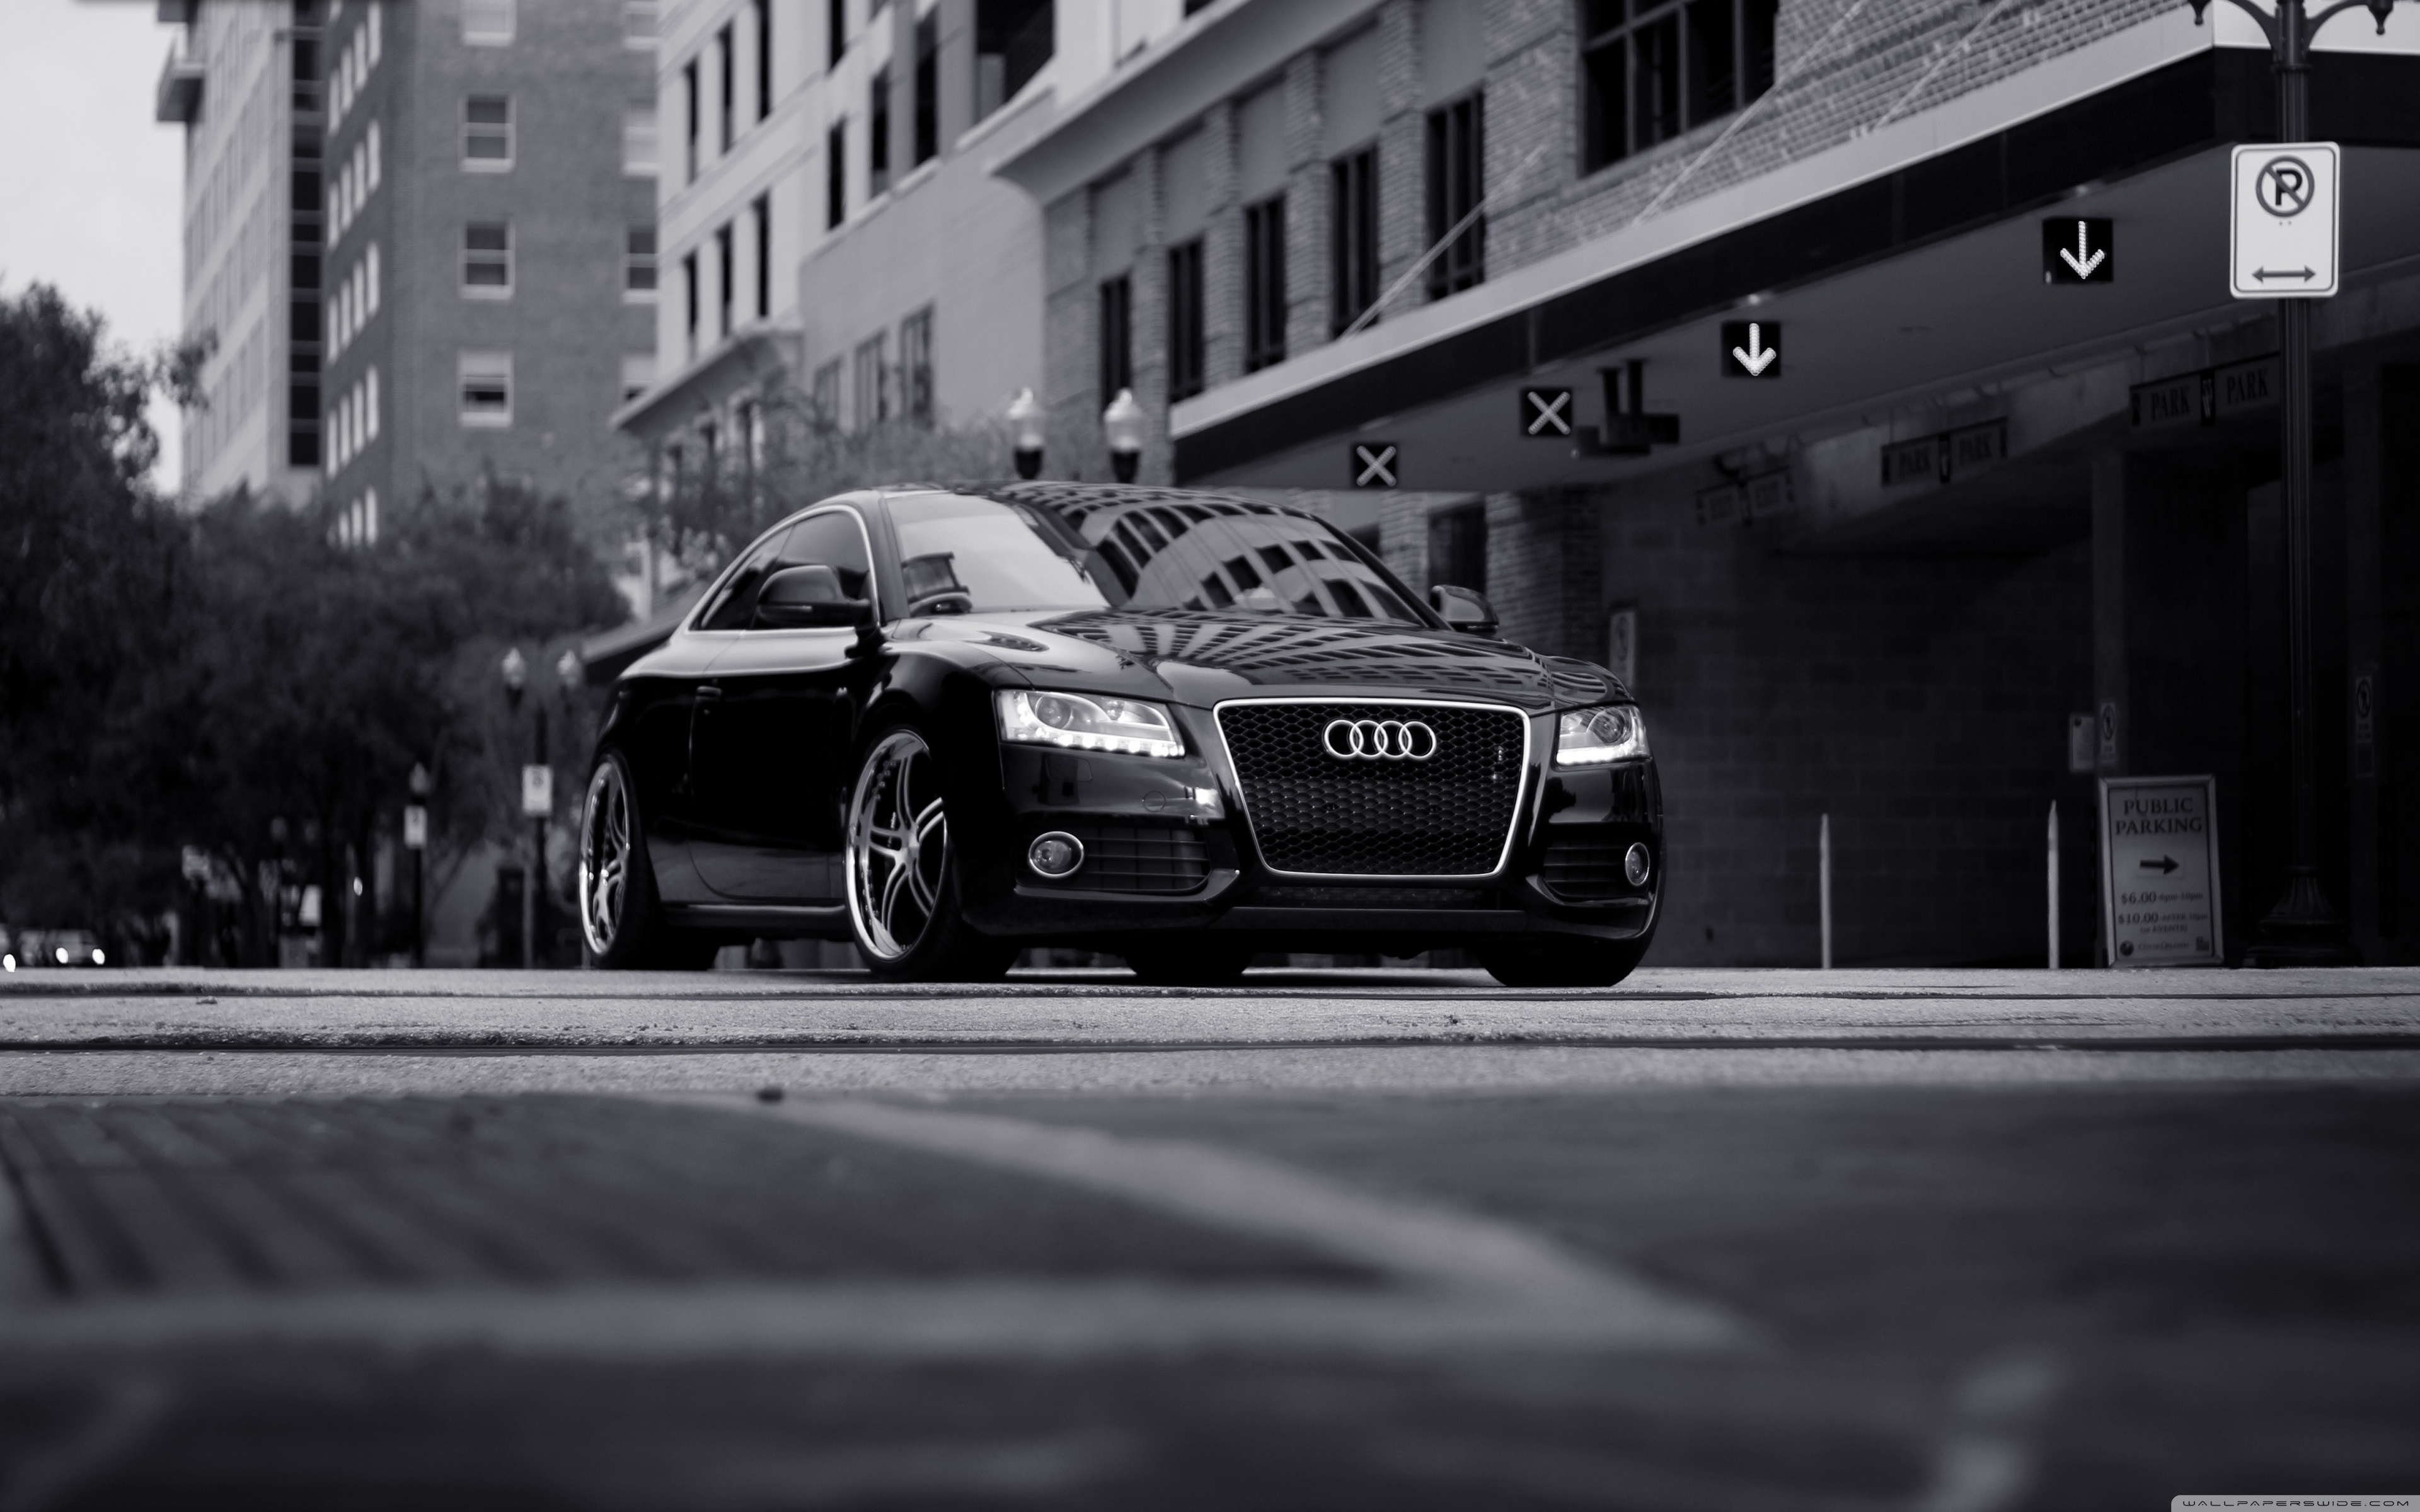 3840x2400 - Audi A5 Wallpapers 30